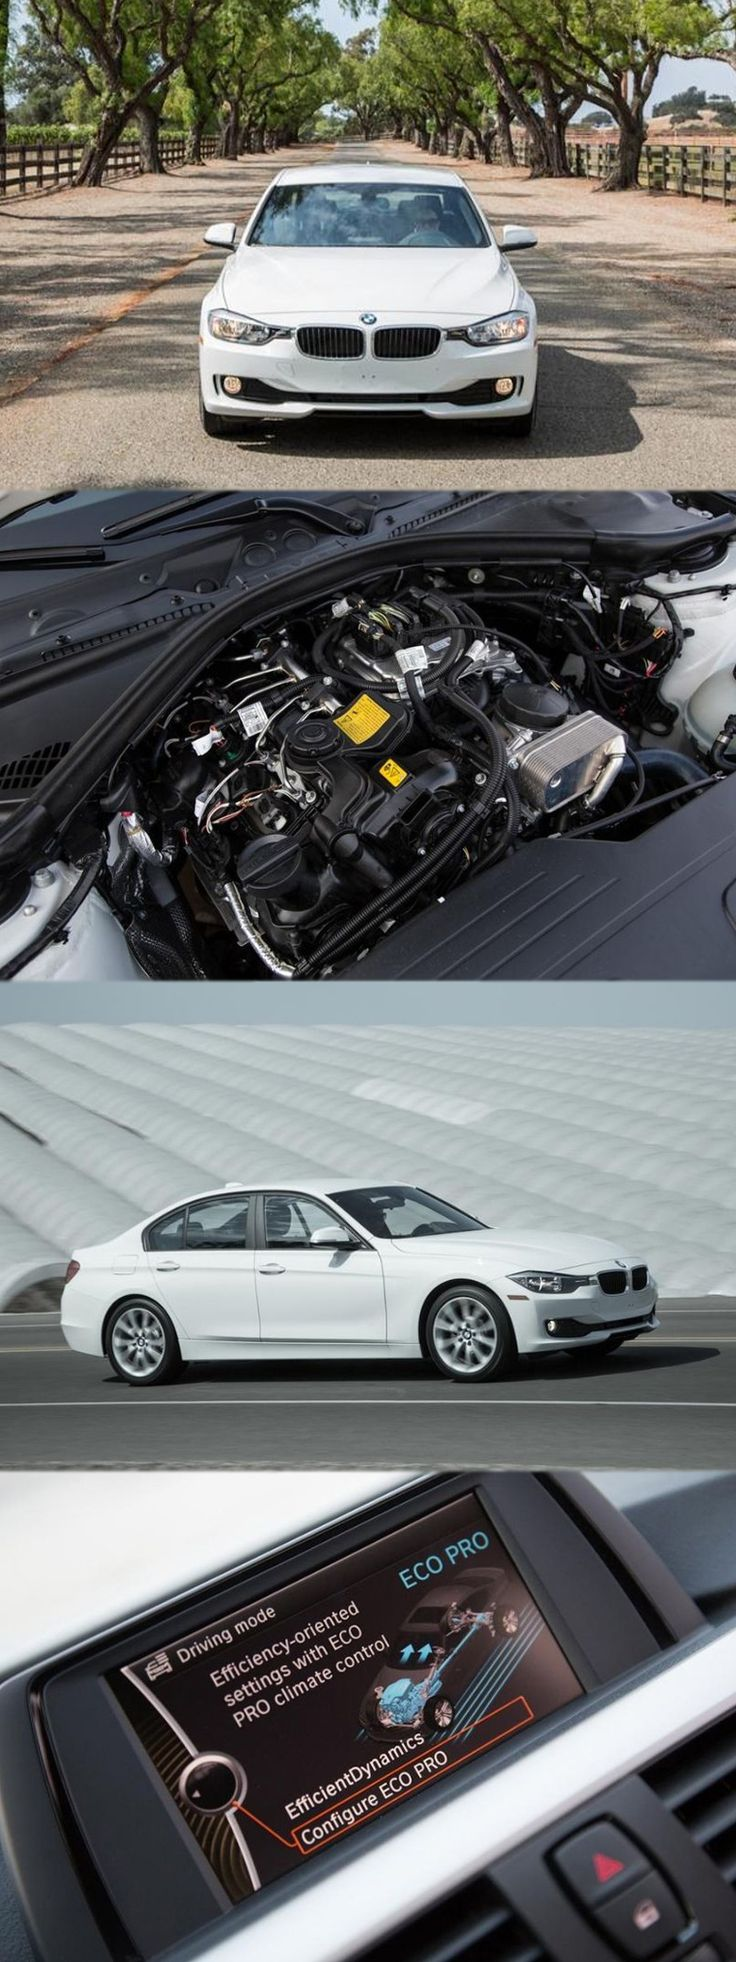 BMW 320i is A Car that everyone can Enjoy https://www.enginetrust.co.uk/blog/category/bmw/